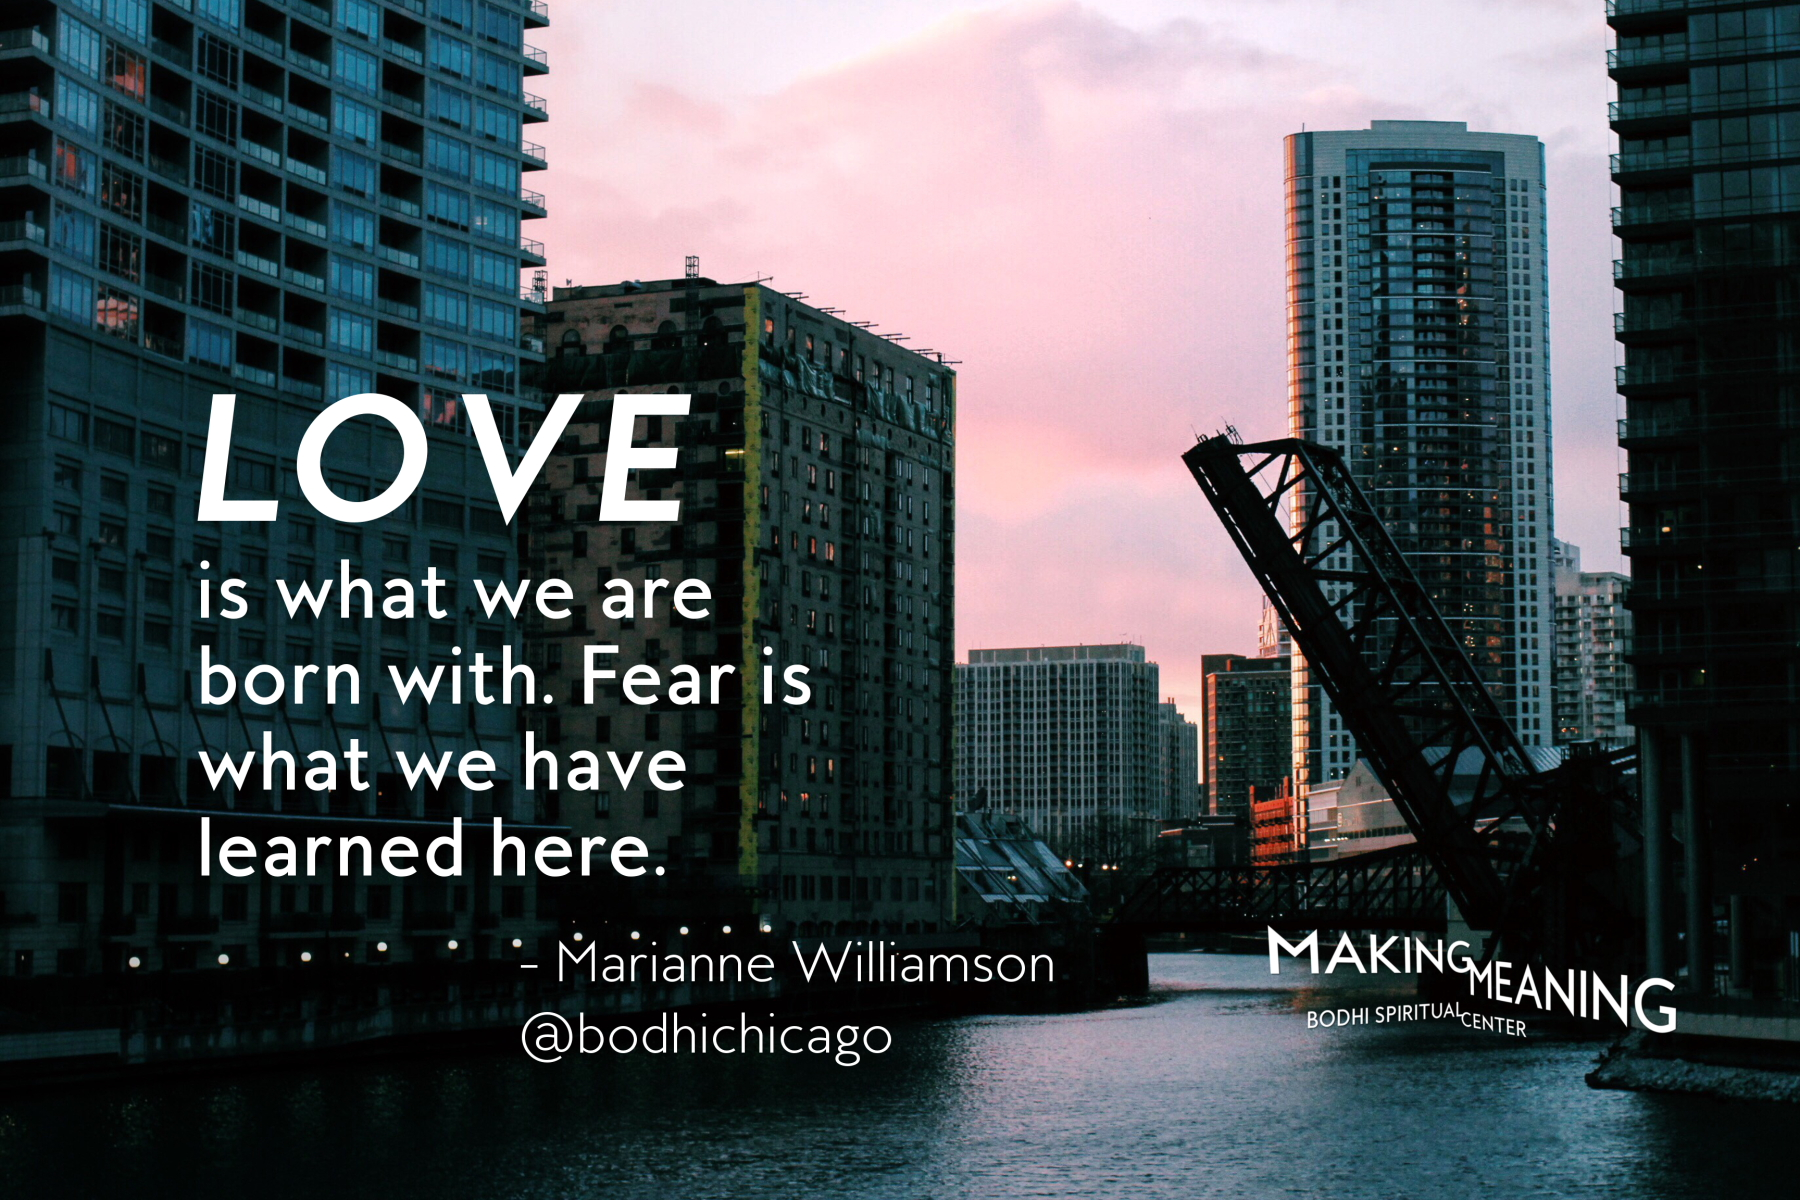 Wednesday Wisdom Quote: Marianne Williamson On Love And Fear